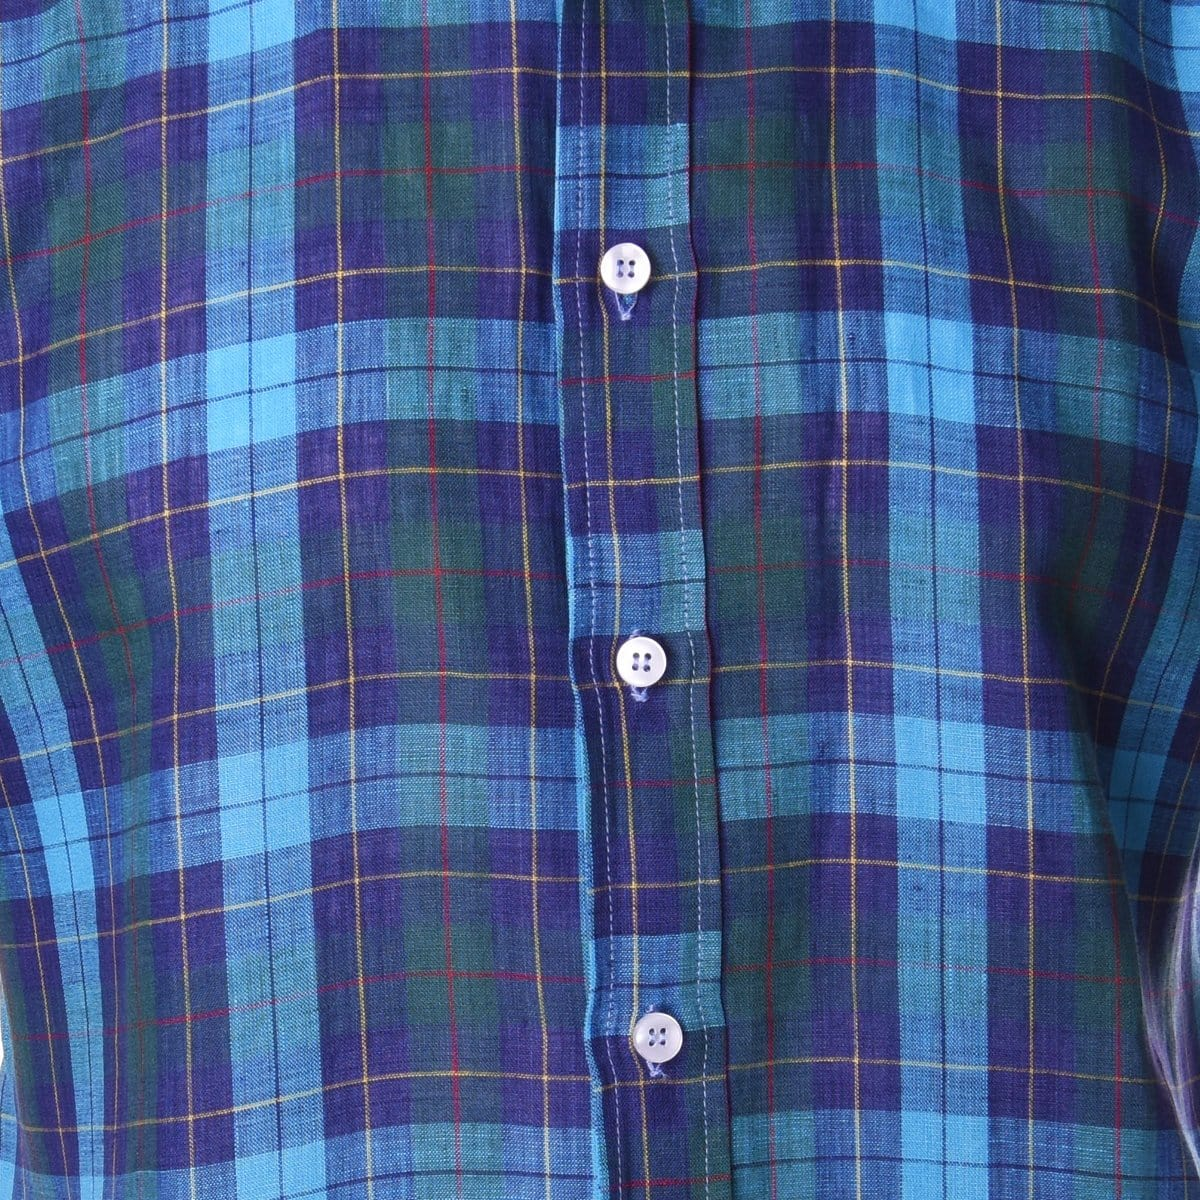 Nicholson Teal Navy Vintage Plaid